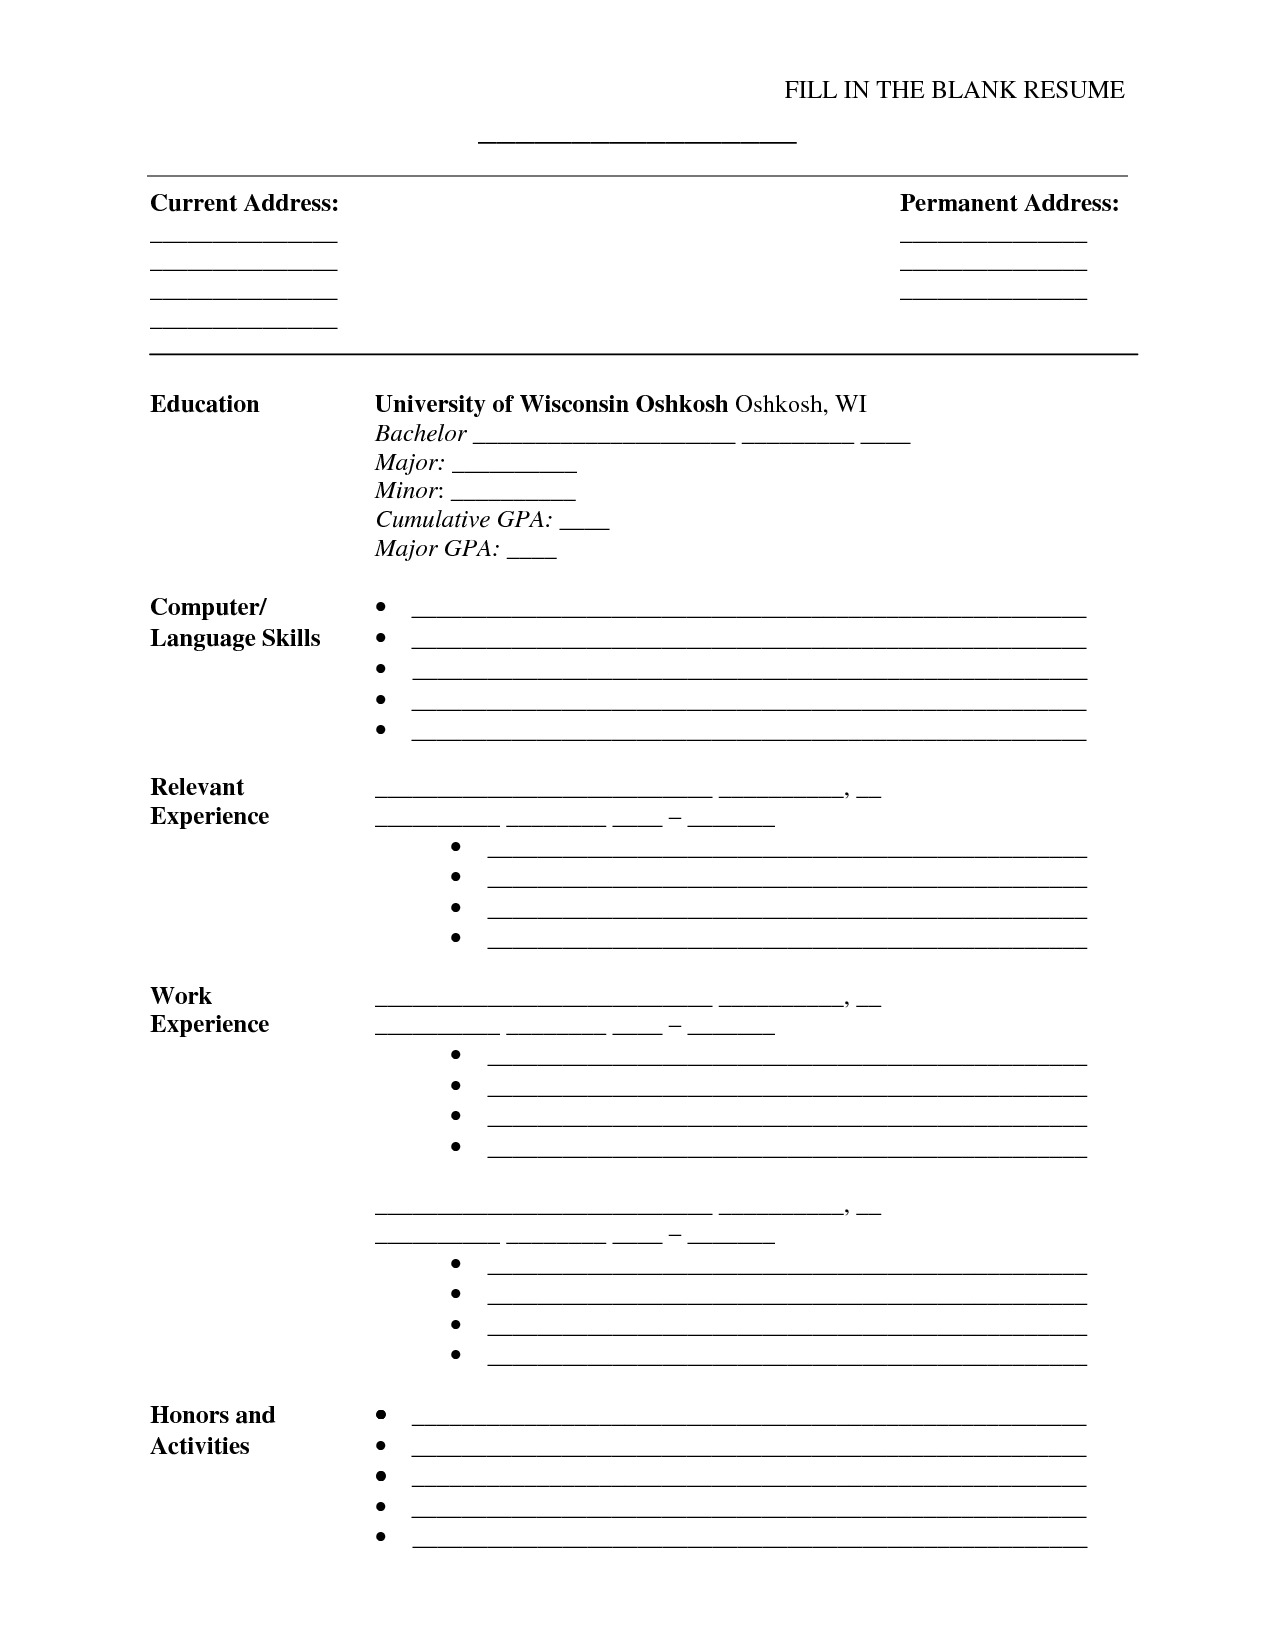 Blank Resume Template Fill In The Blank Resume Pdf  Httpwwwresumecareerfill